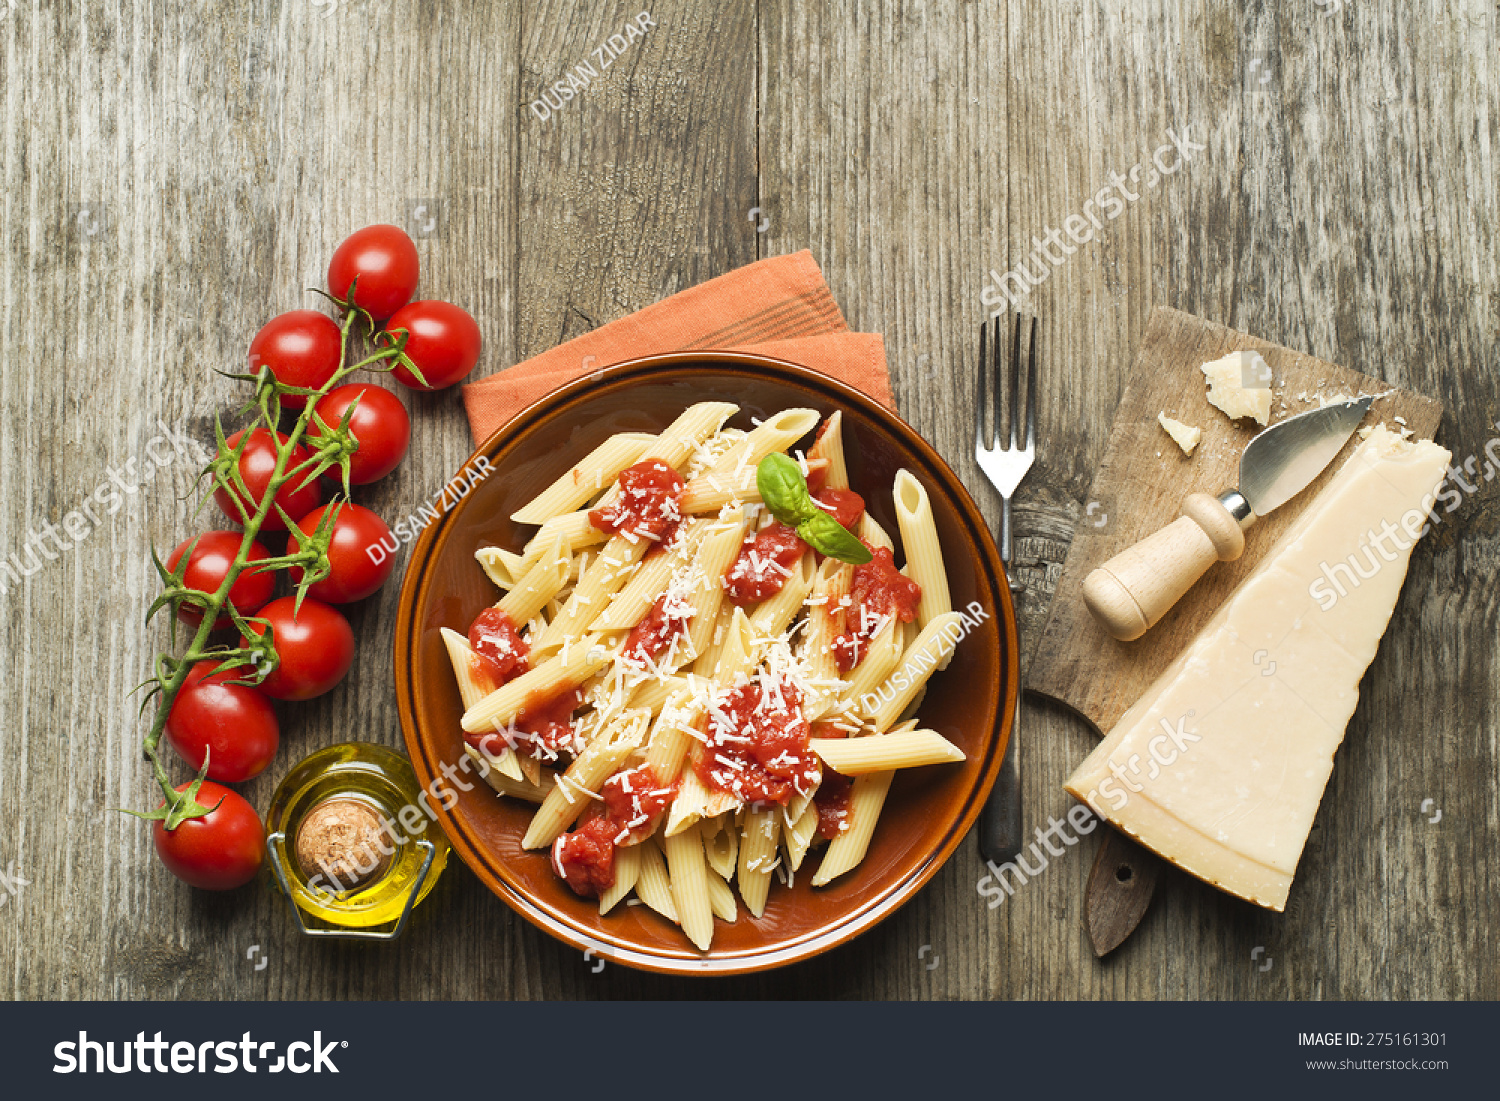 Plate Of Penne Pasta With Tomato Sauce And Parmesan Cheese Stock Photo ...